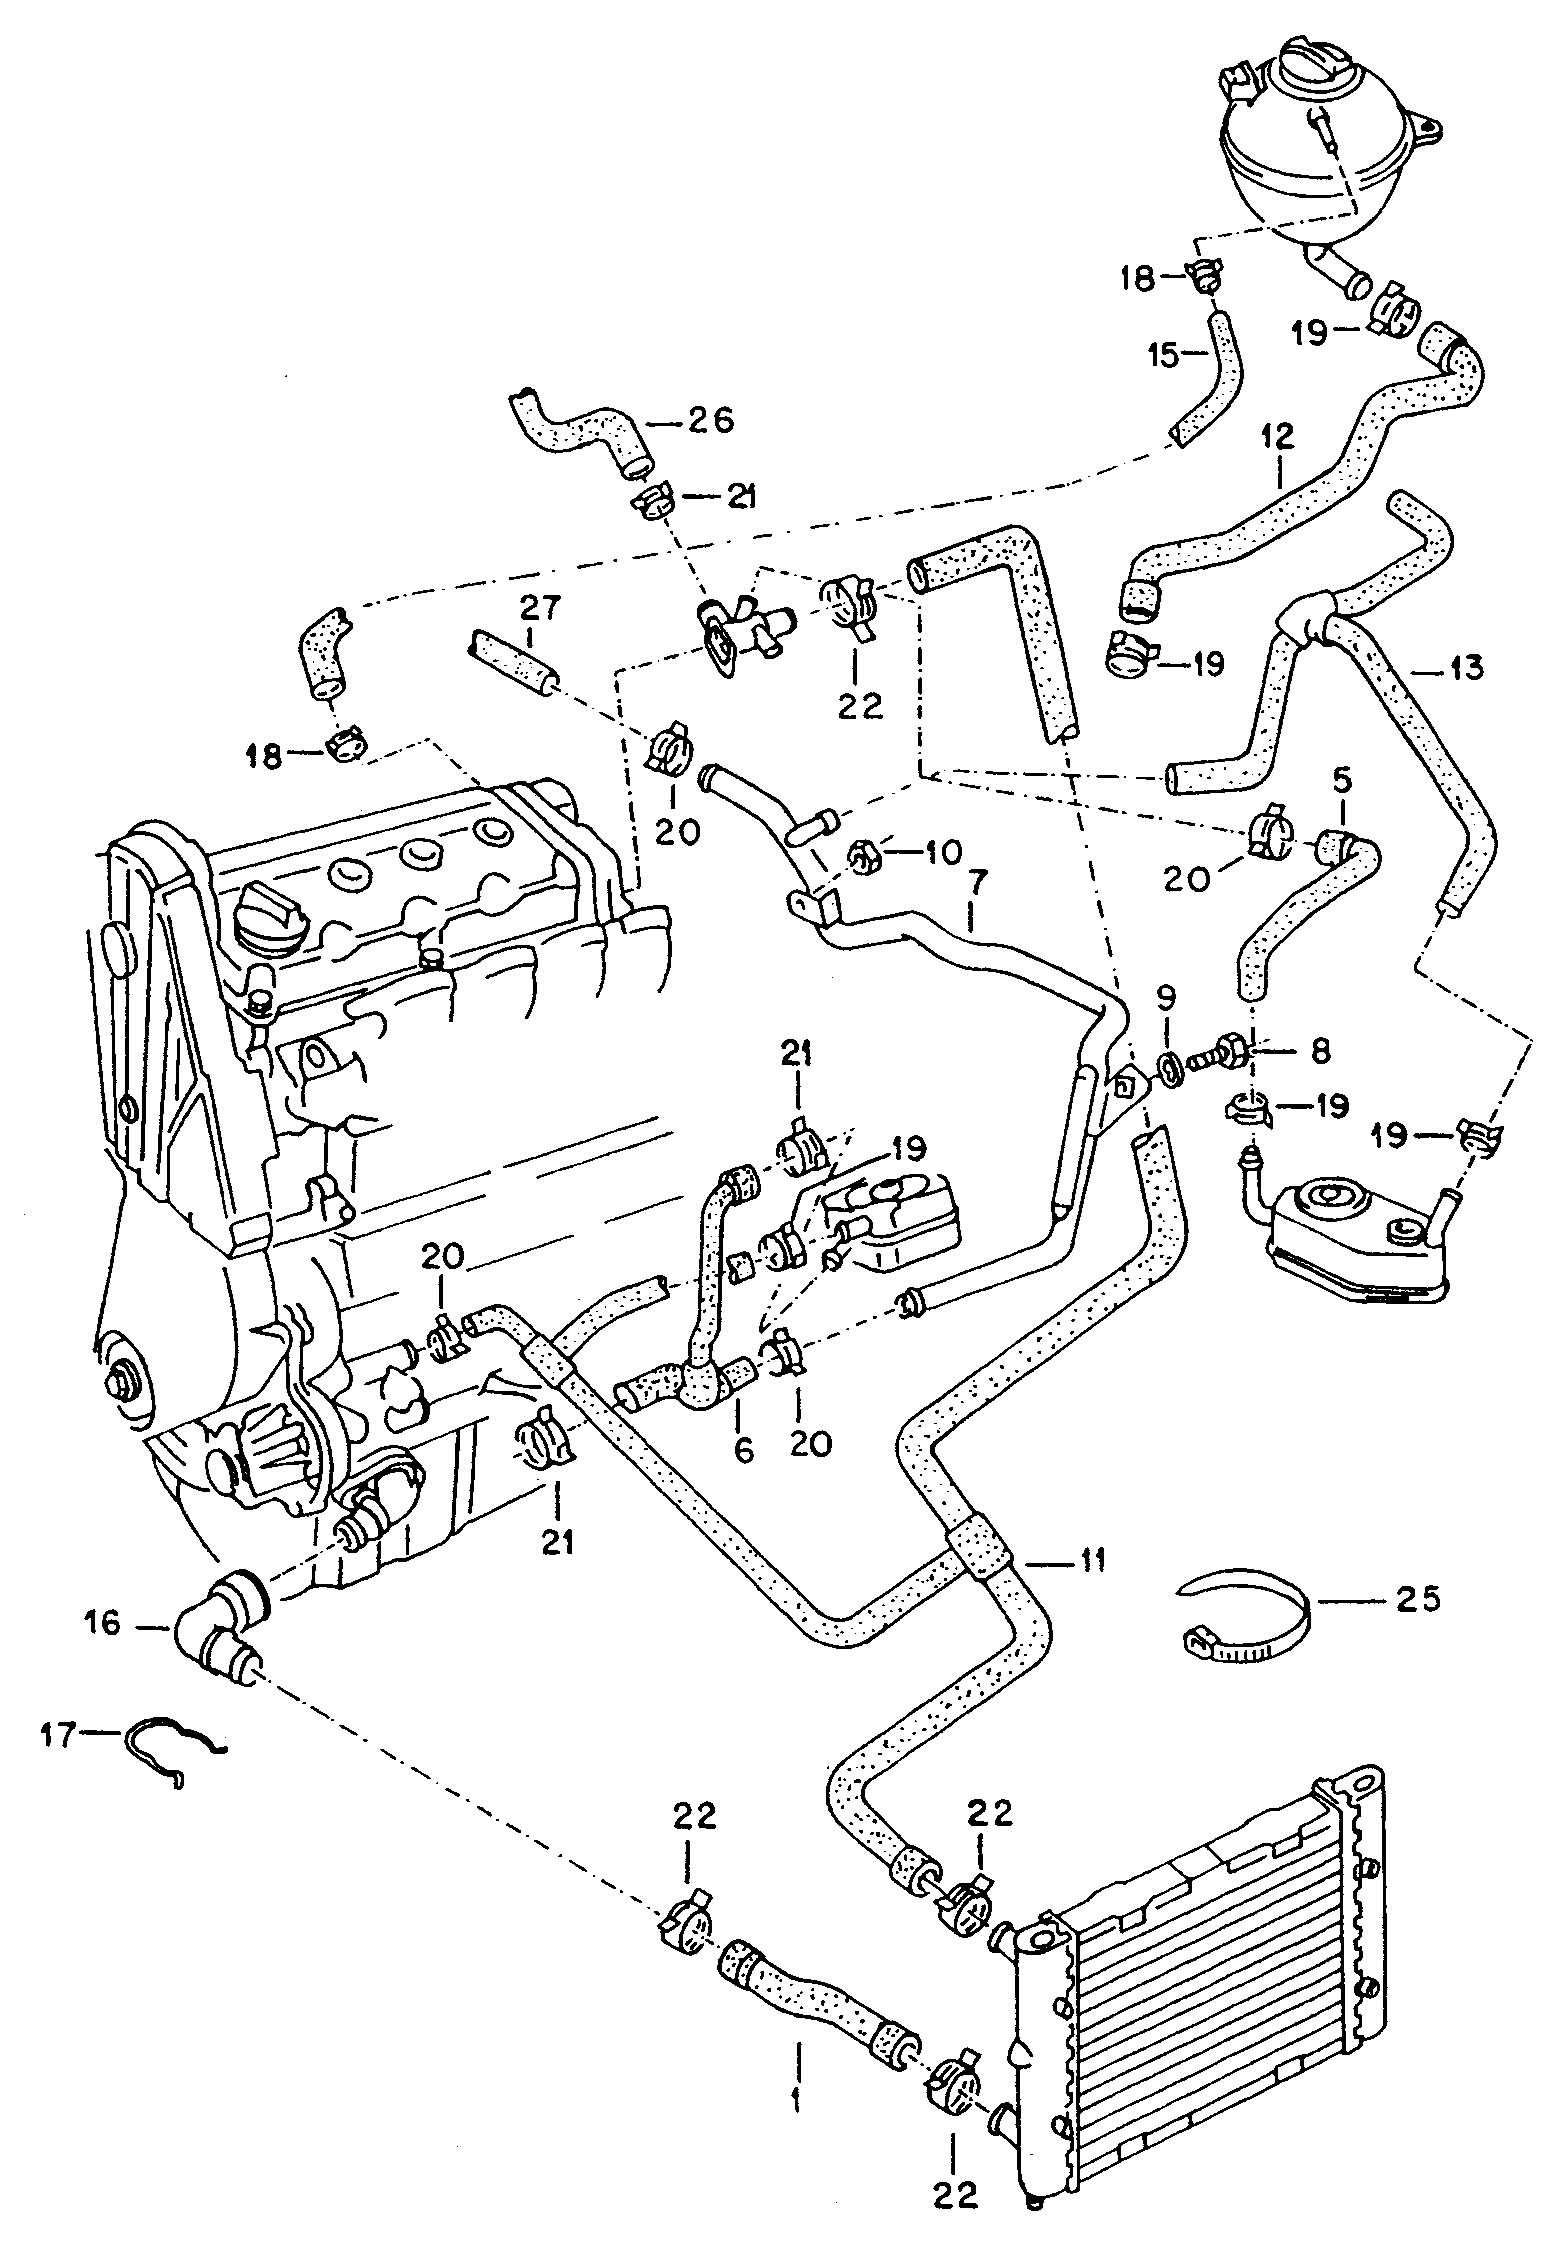 Vw Jetta Vr6 Engine Diagram Within Diagram Wiring And